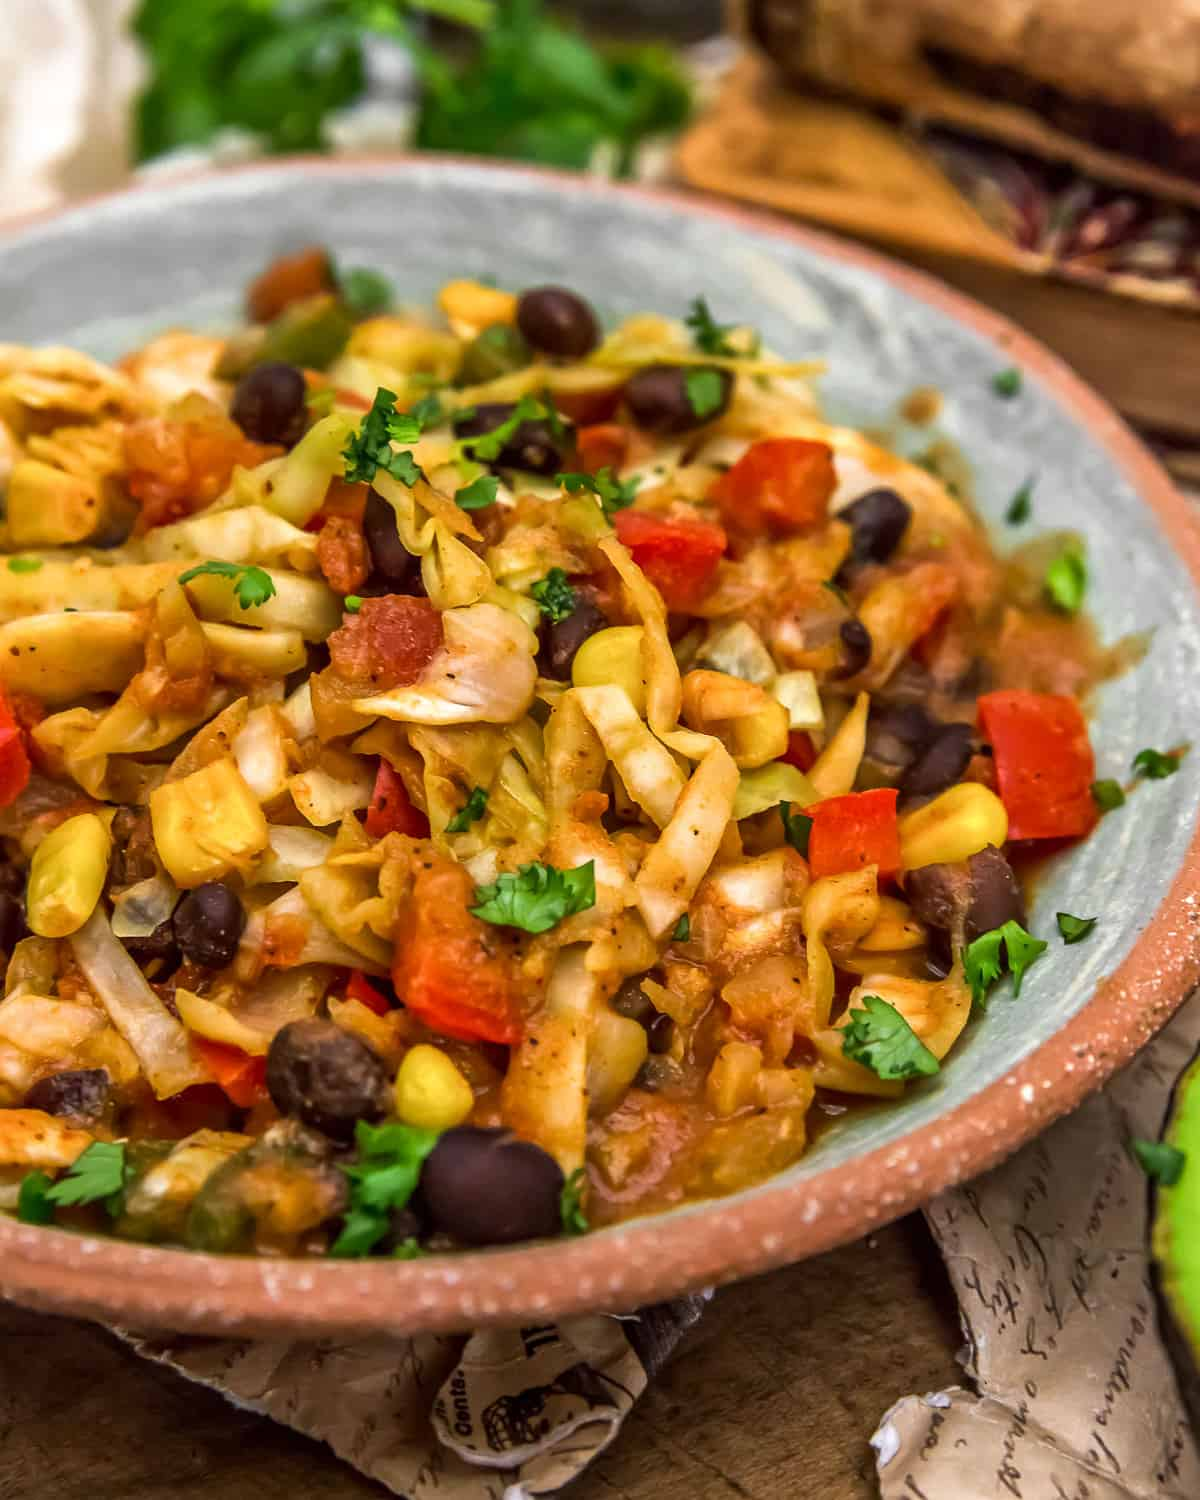 Tex-Mex Cabbage Skillet in a bowl